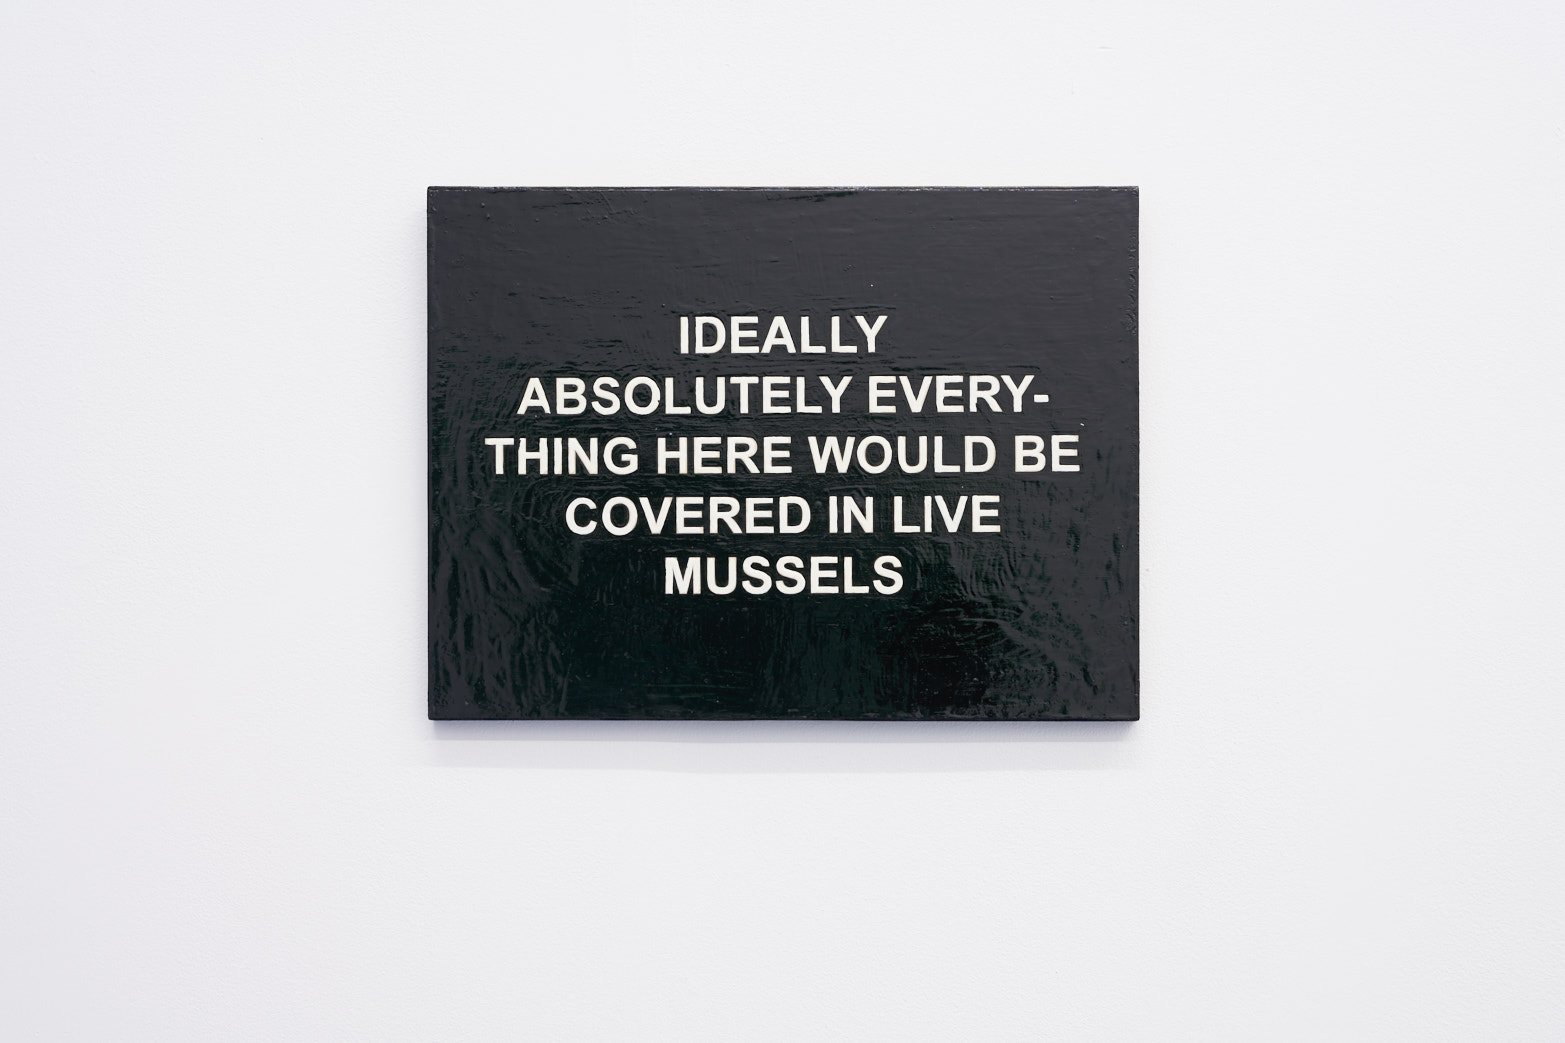 Laure Prouvost, IDEALLY ABSOLUTELY EVERYTHING HERE WOULD BE COVERED IN MUSSELS, 2011. Courtesy of the artist, carlier | gebauer and Tenderpixel.